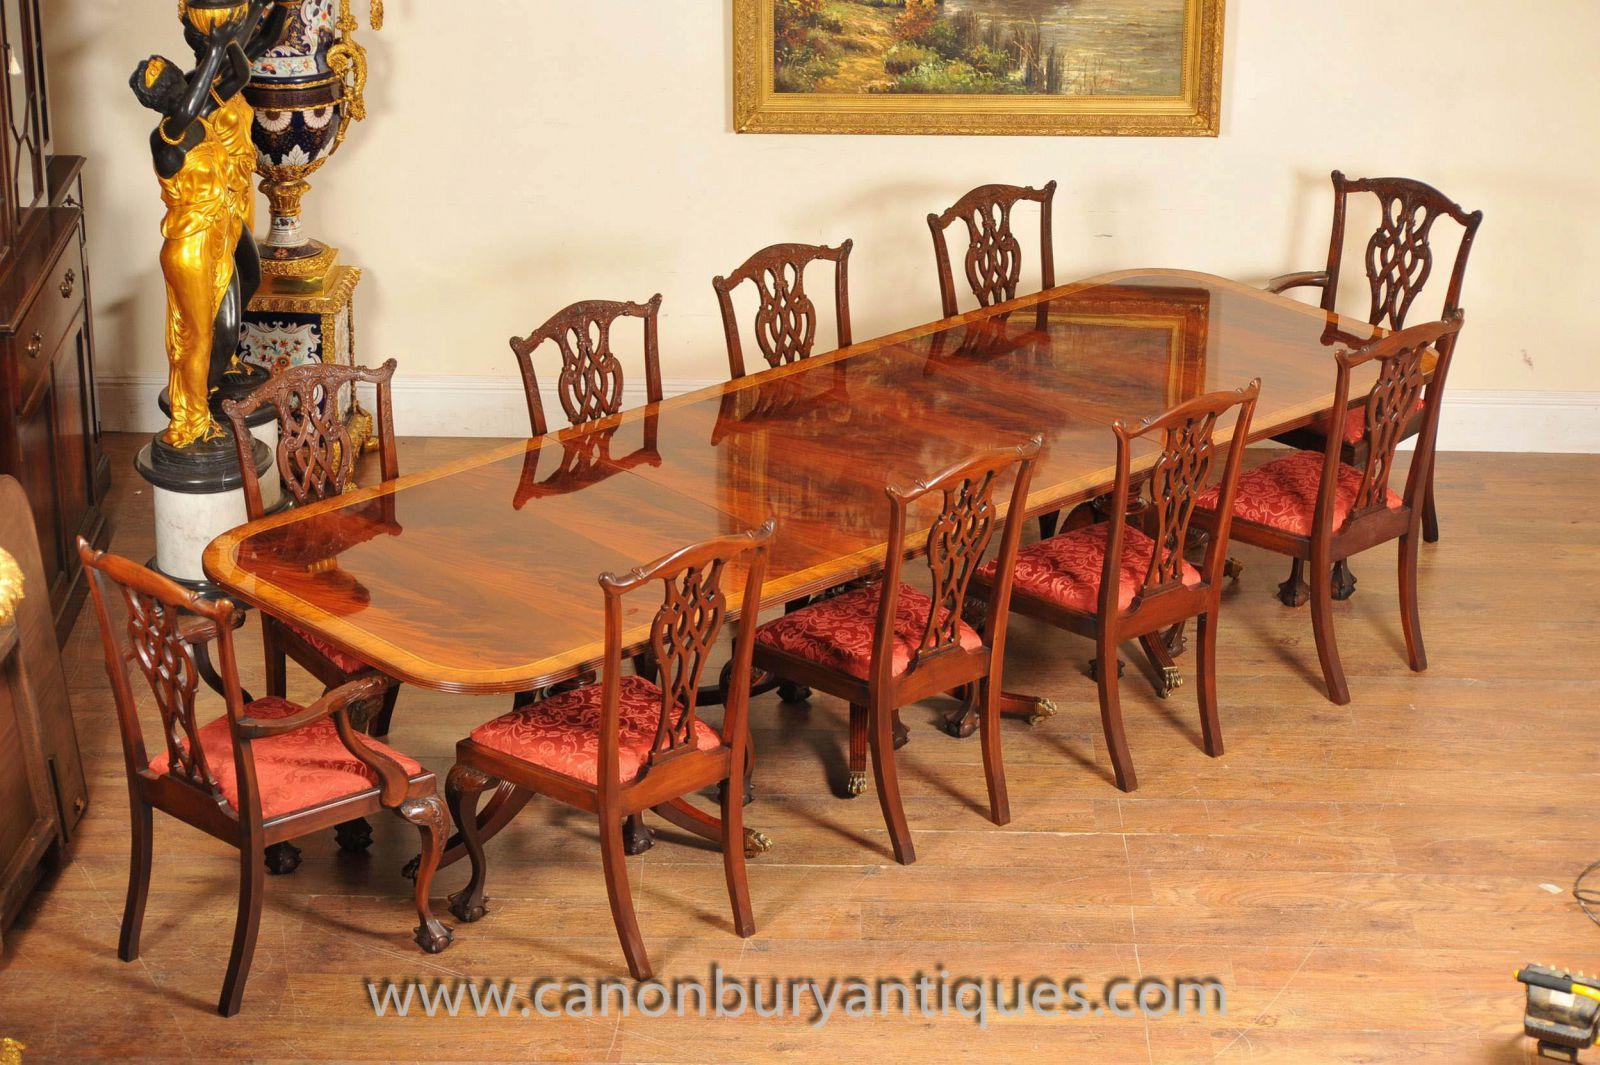 Regency Table and Chippendale Chairs & English Antique Dining Tables and Chairs - A Guide